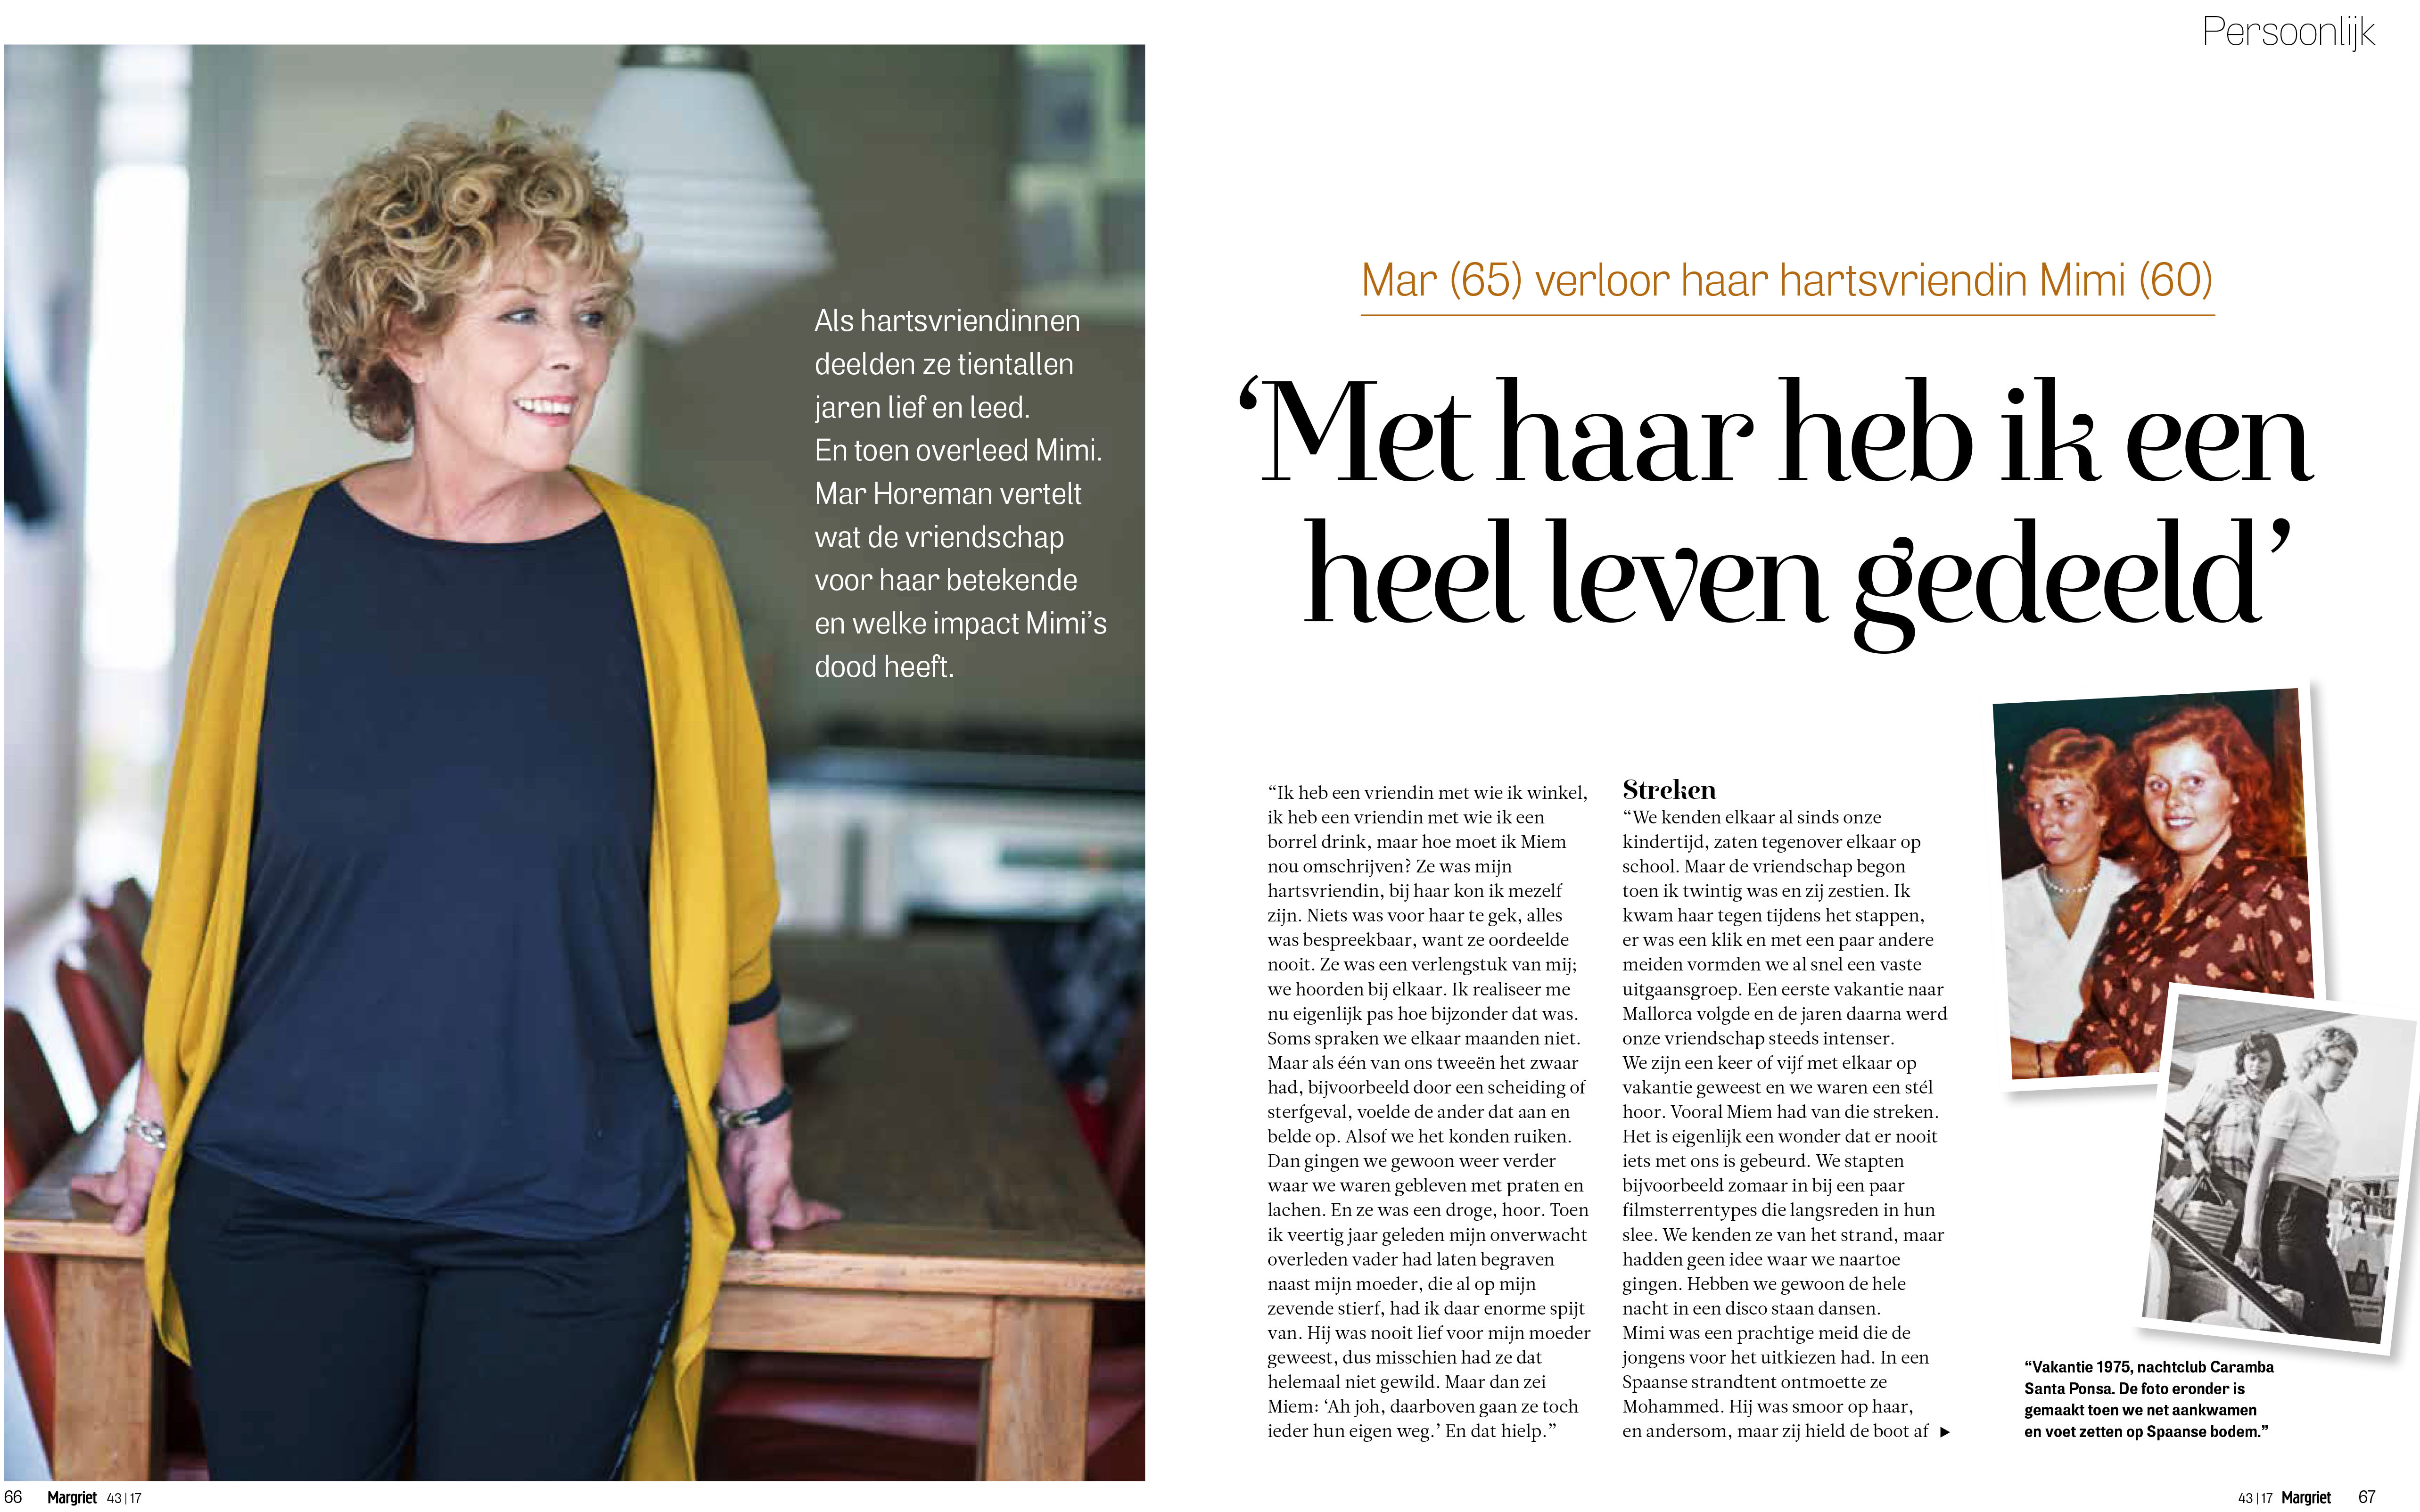 Just Published | Mar verloor haar hartsvriendin | MARGRIET